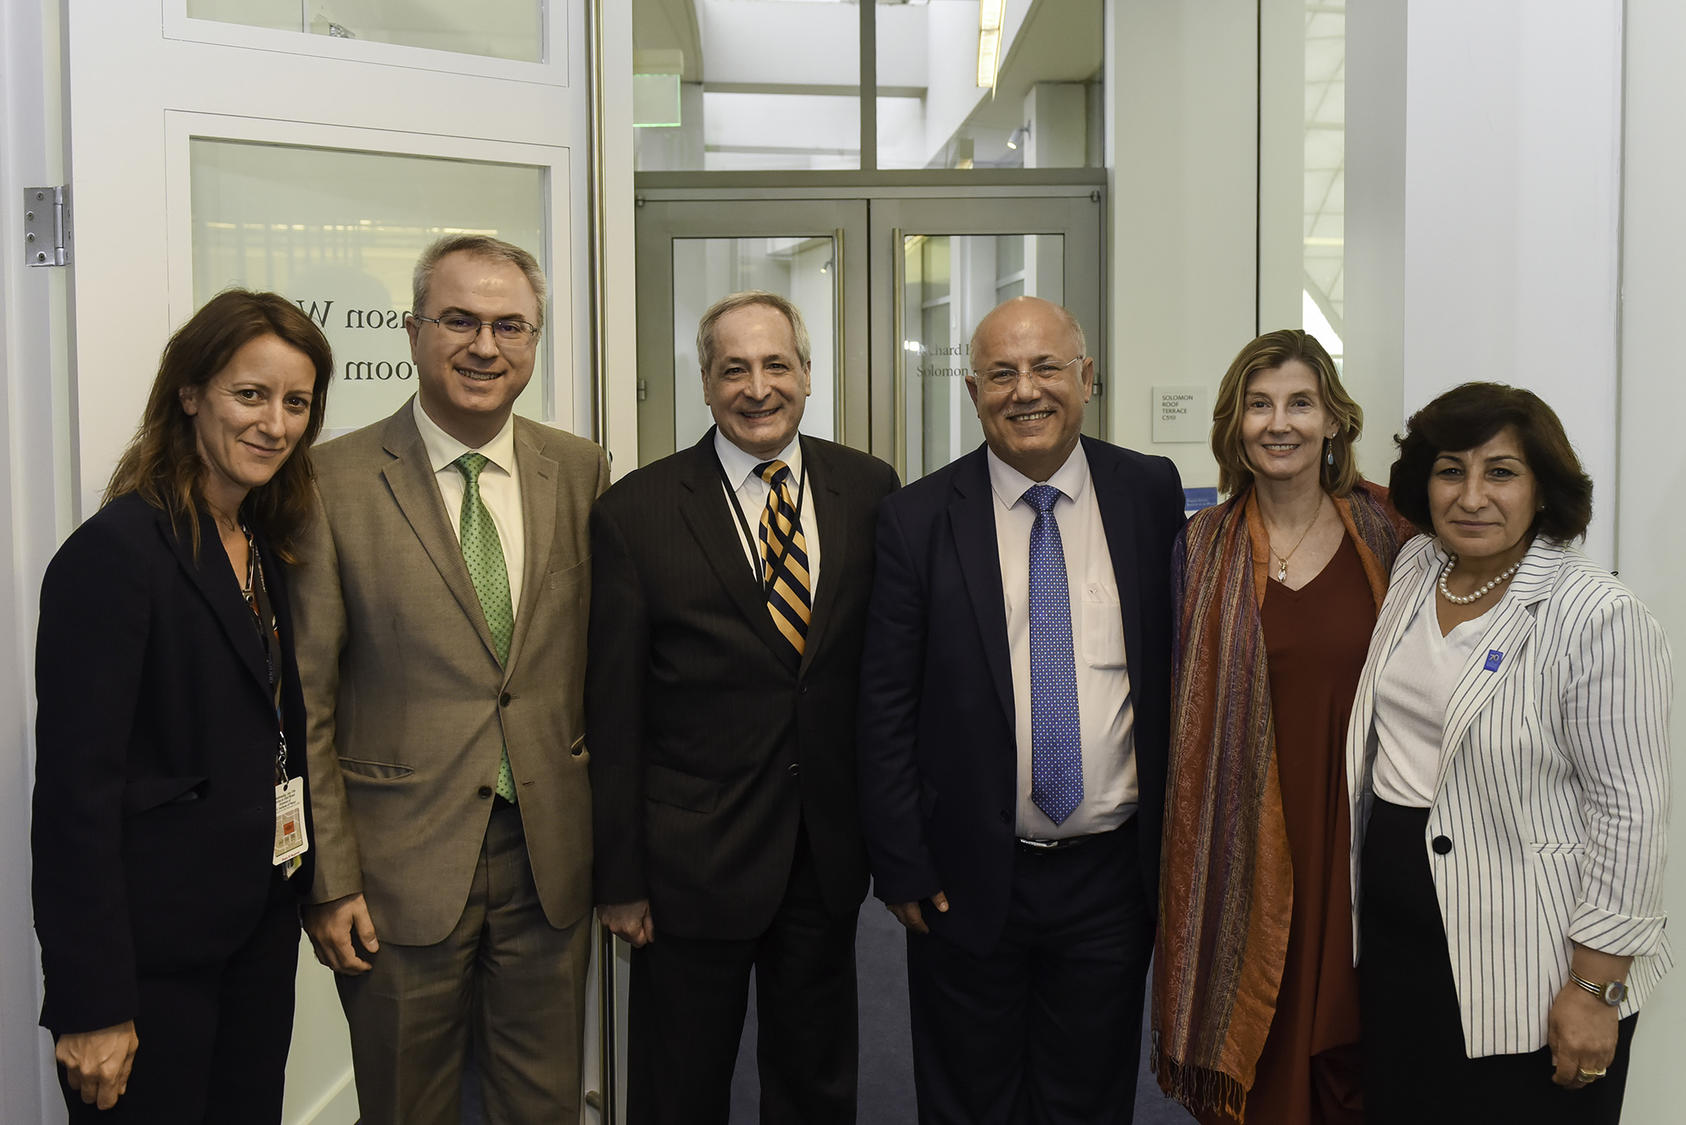 USIP's Susan Hayward, Sarhang Hamasaeed and Michael Yaffe with William Warda, USIP President Nancy Lindborg and Pascale Warda at the U.S. Institute of Peace headquarters on July 17, 2019.